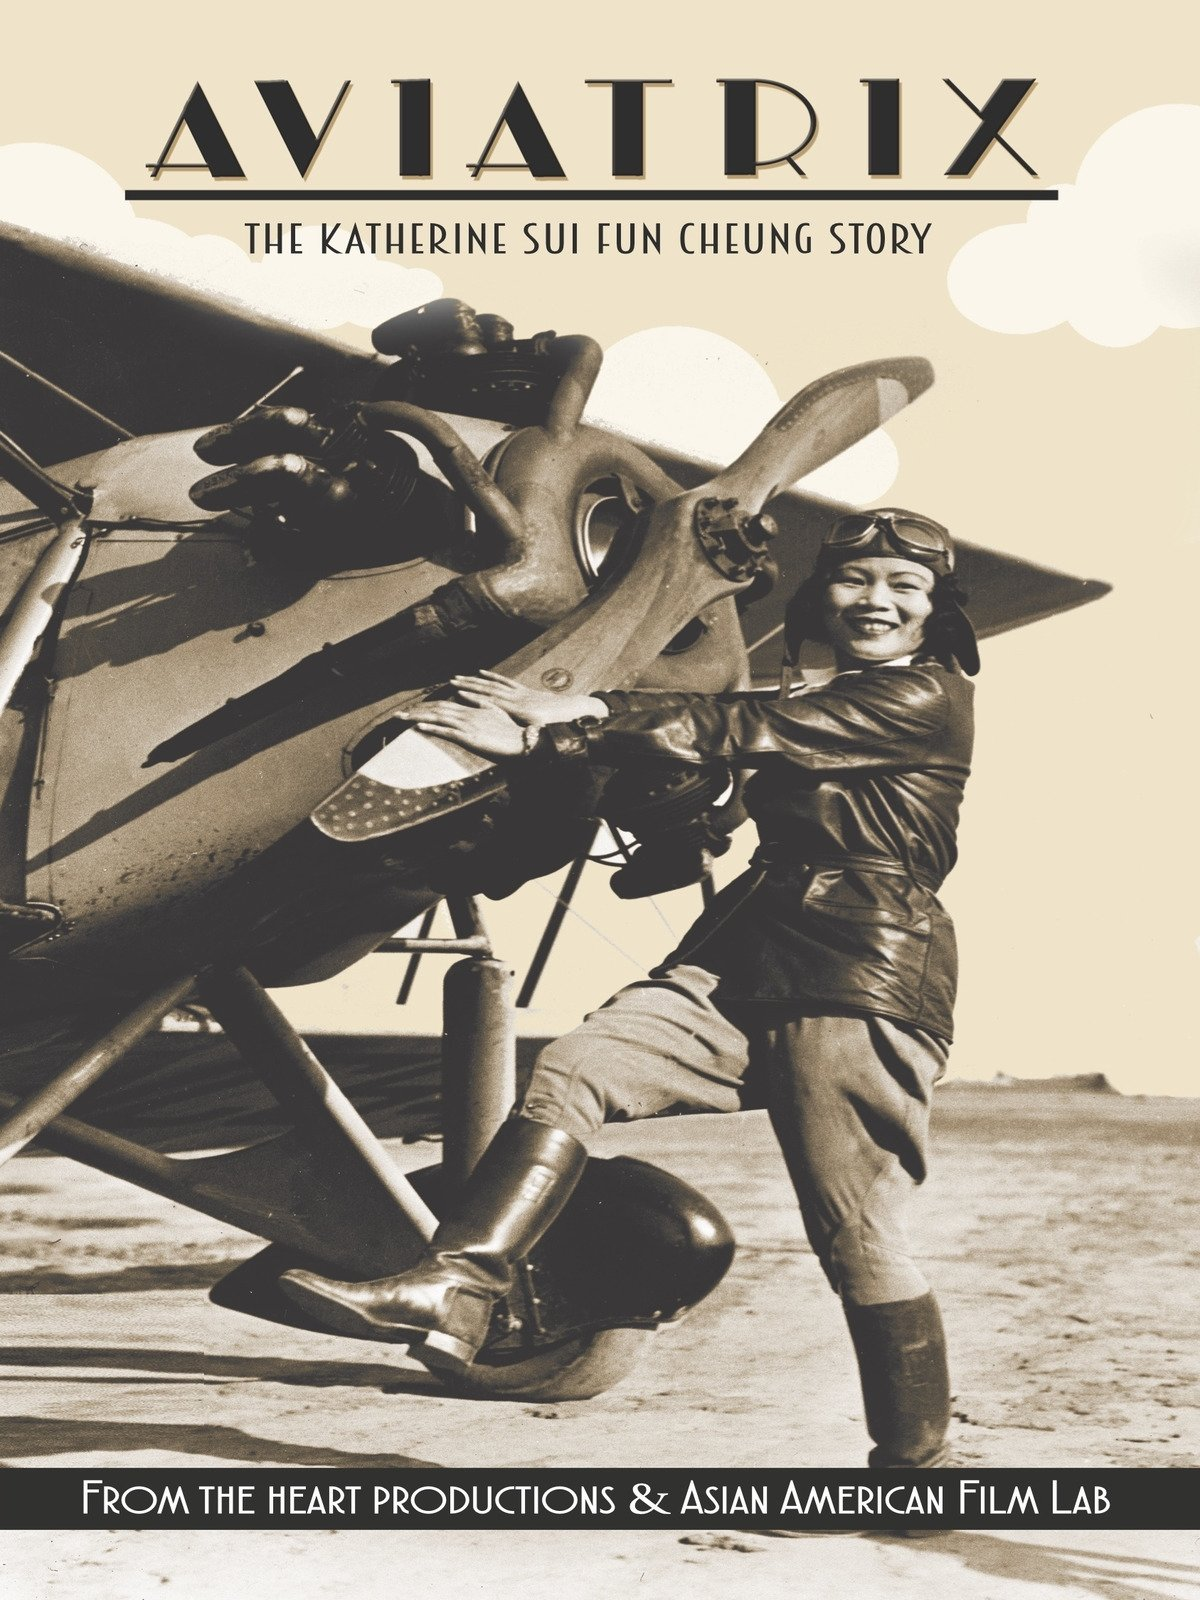 Aviatrix: The Katherine Sui Fun Cheung Story